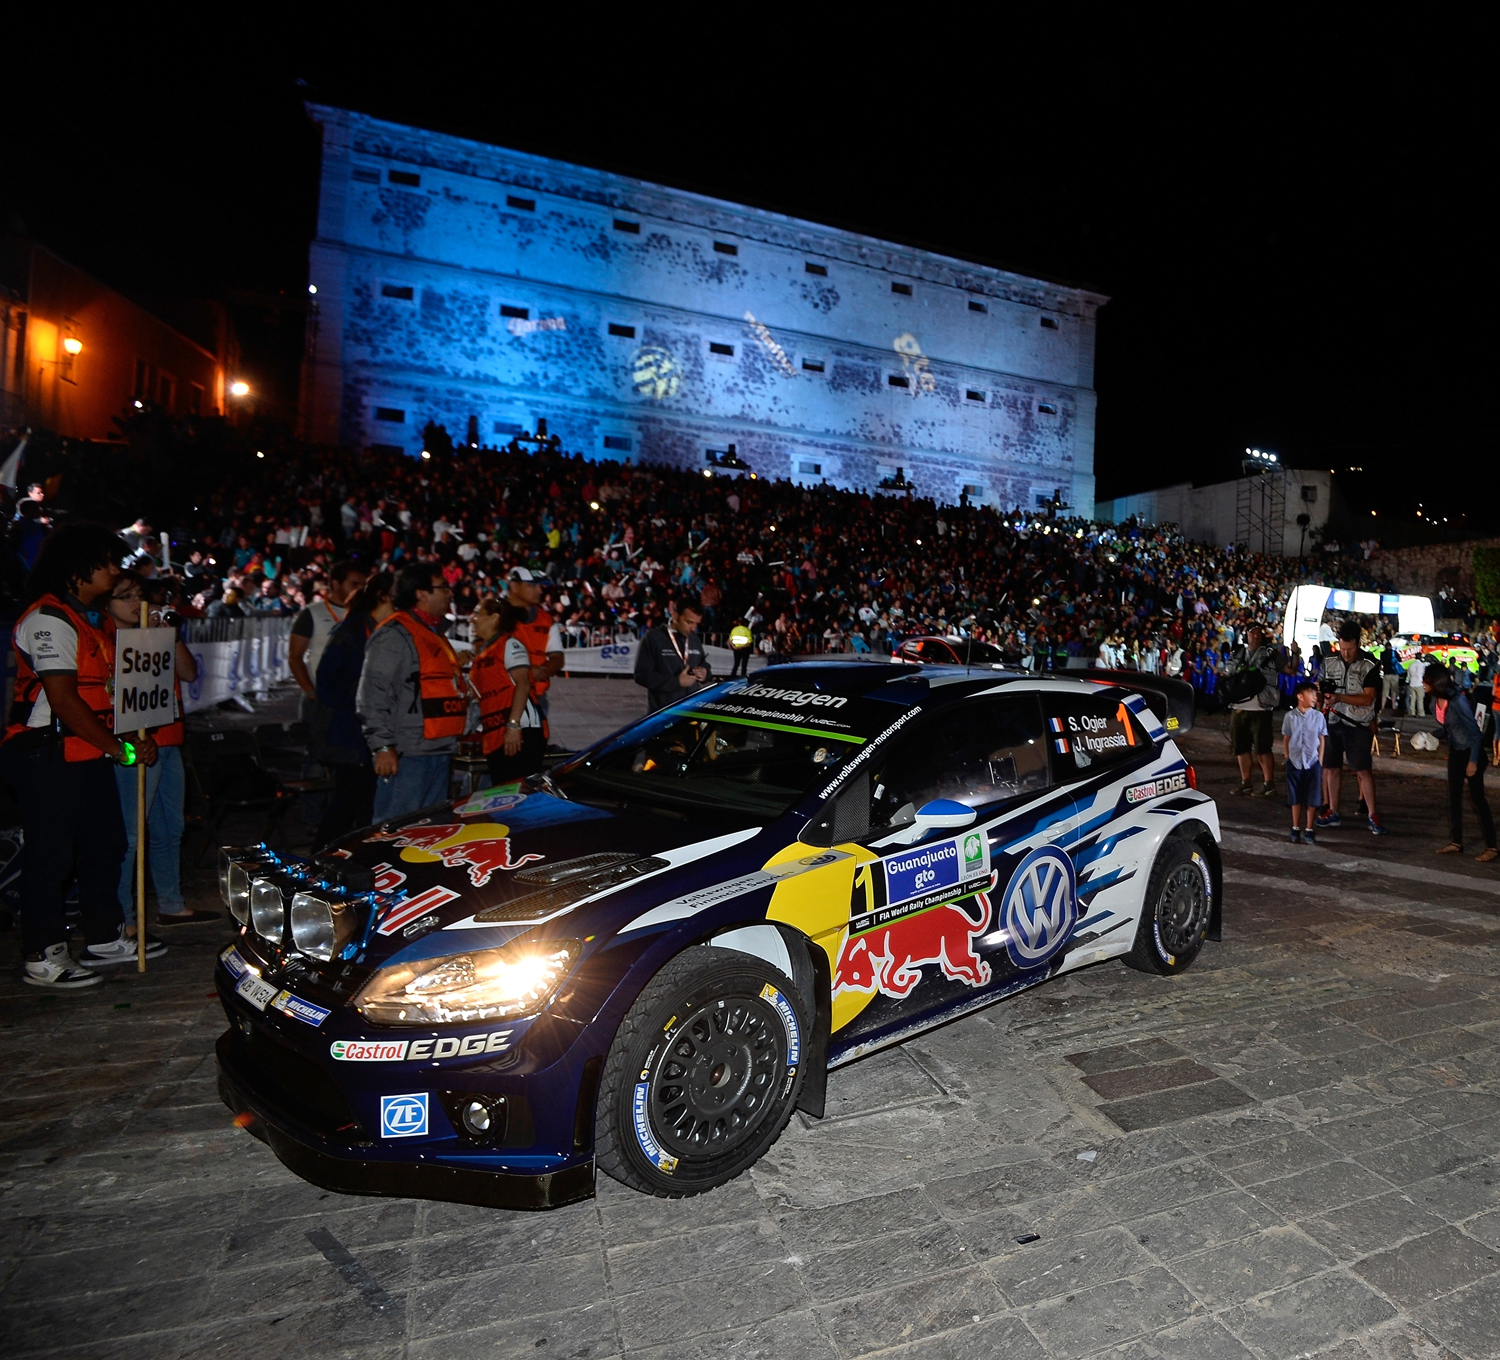 FIA WORLD RALLY CHAMPIONSHIP 2015: OGIER AND INGRASSIA SNATCH SLENDER RALLY LEAD AFTER TWO SHORT MEXICAN SPECIAL STAGES